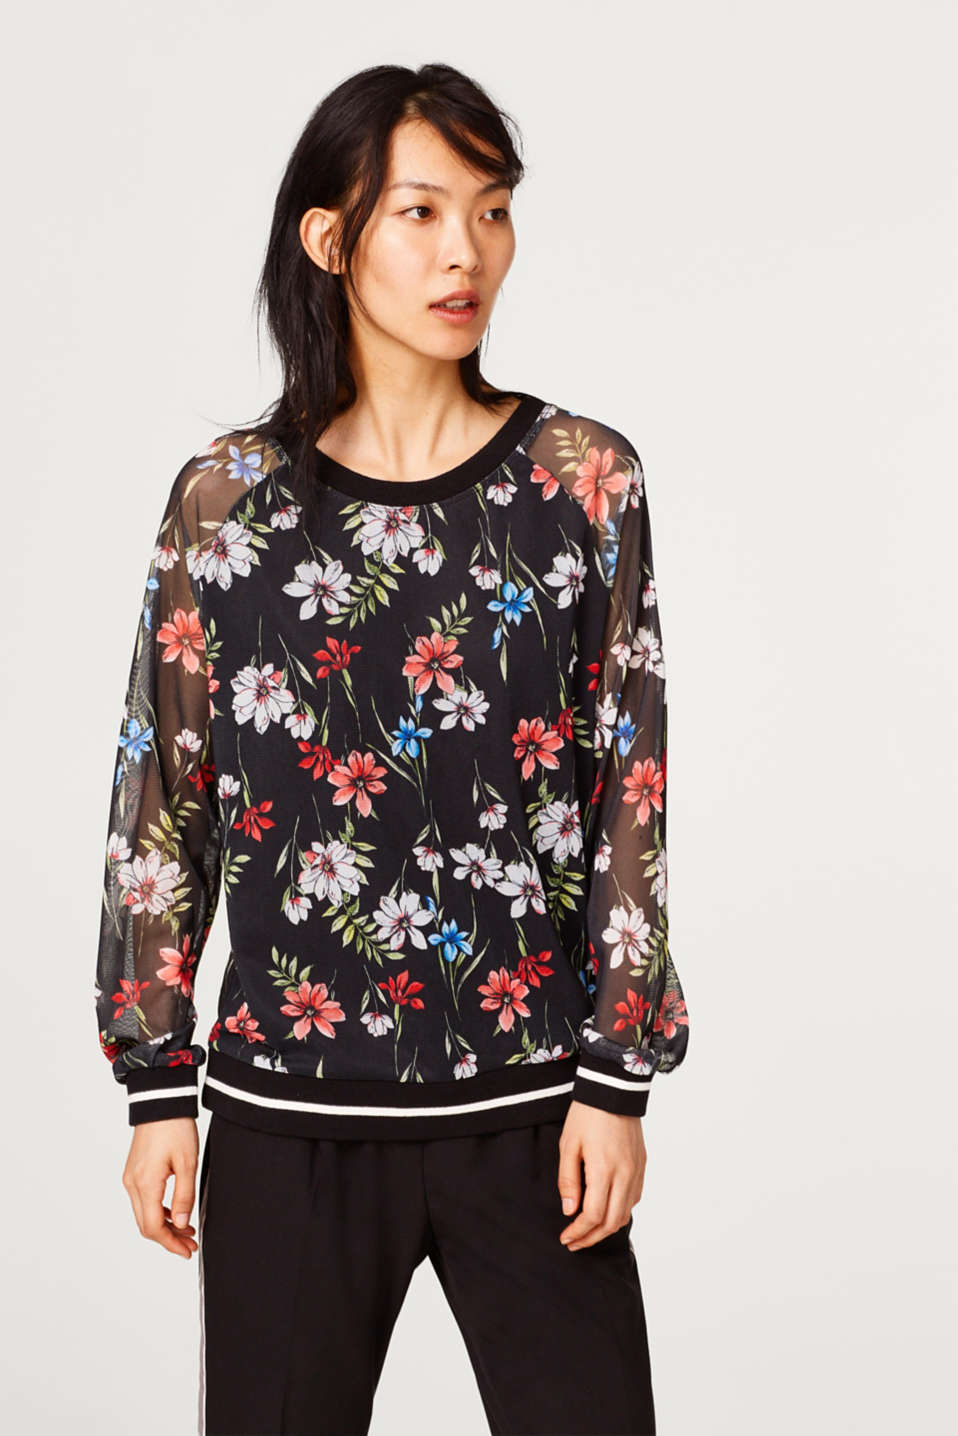 Esprit - Sweatshirt in mesh with a floral print